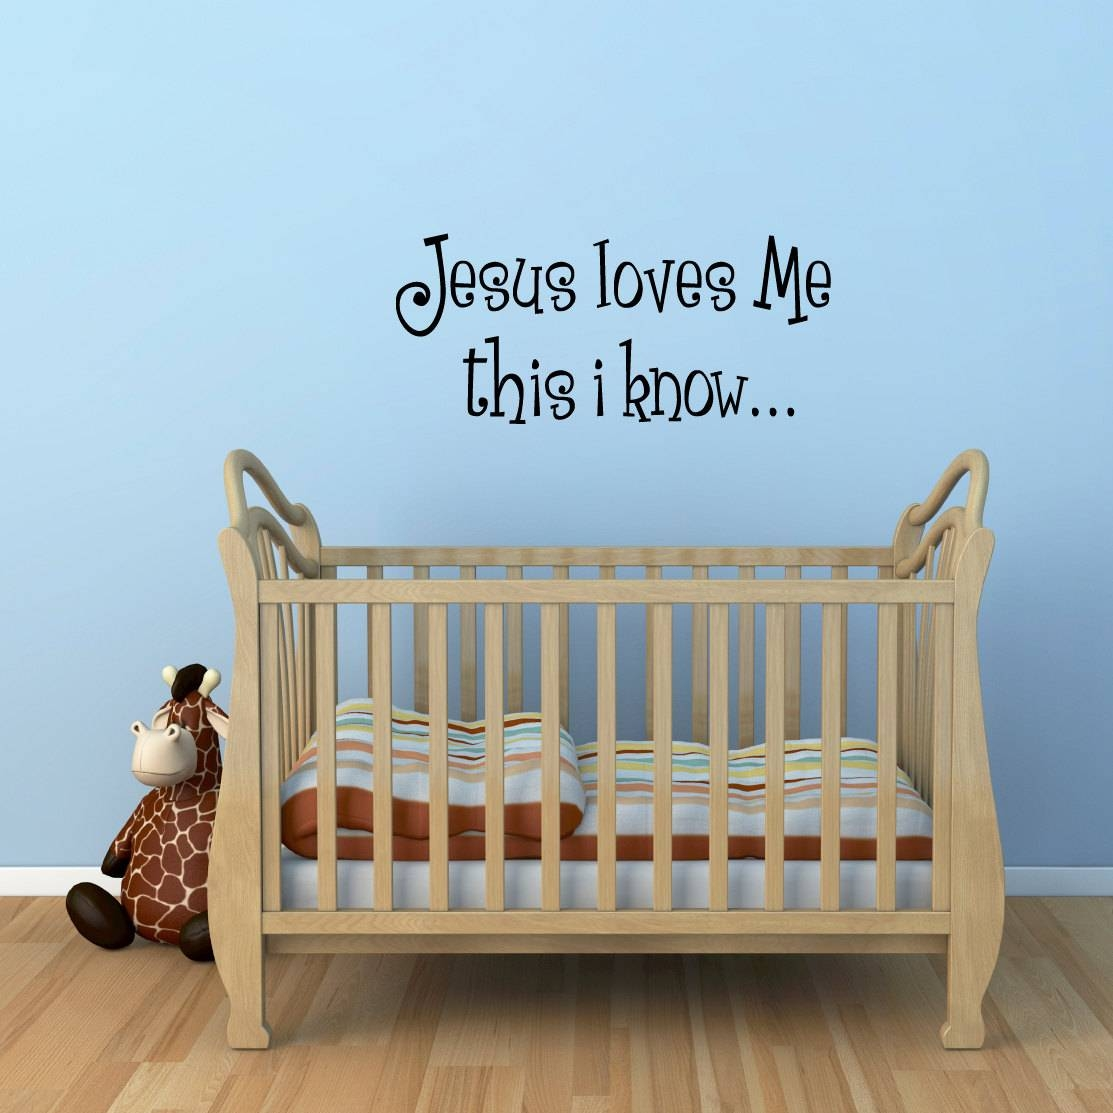 Jesus Loves Me Wall Decal Bible Verse Wall Sticker within 2018 Nursery Bible Verses Wall Decals